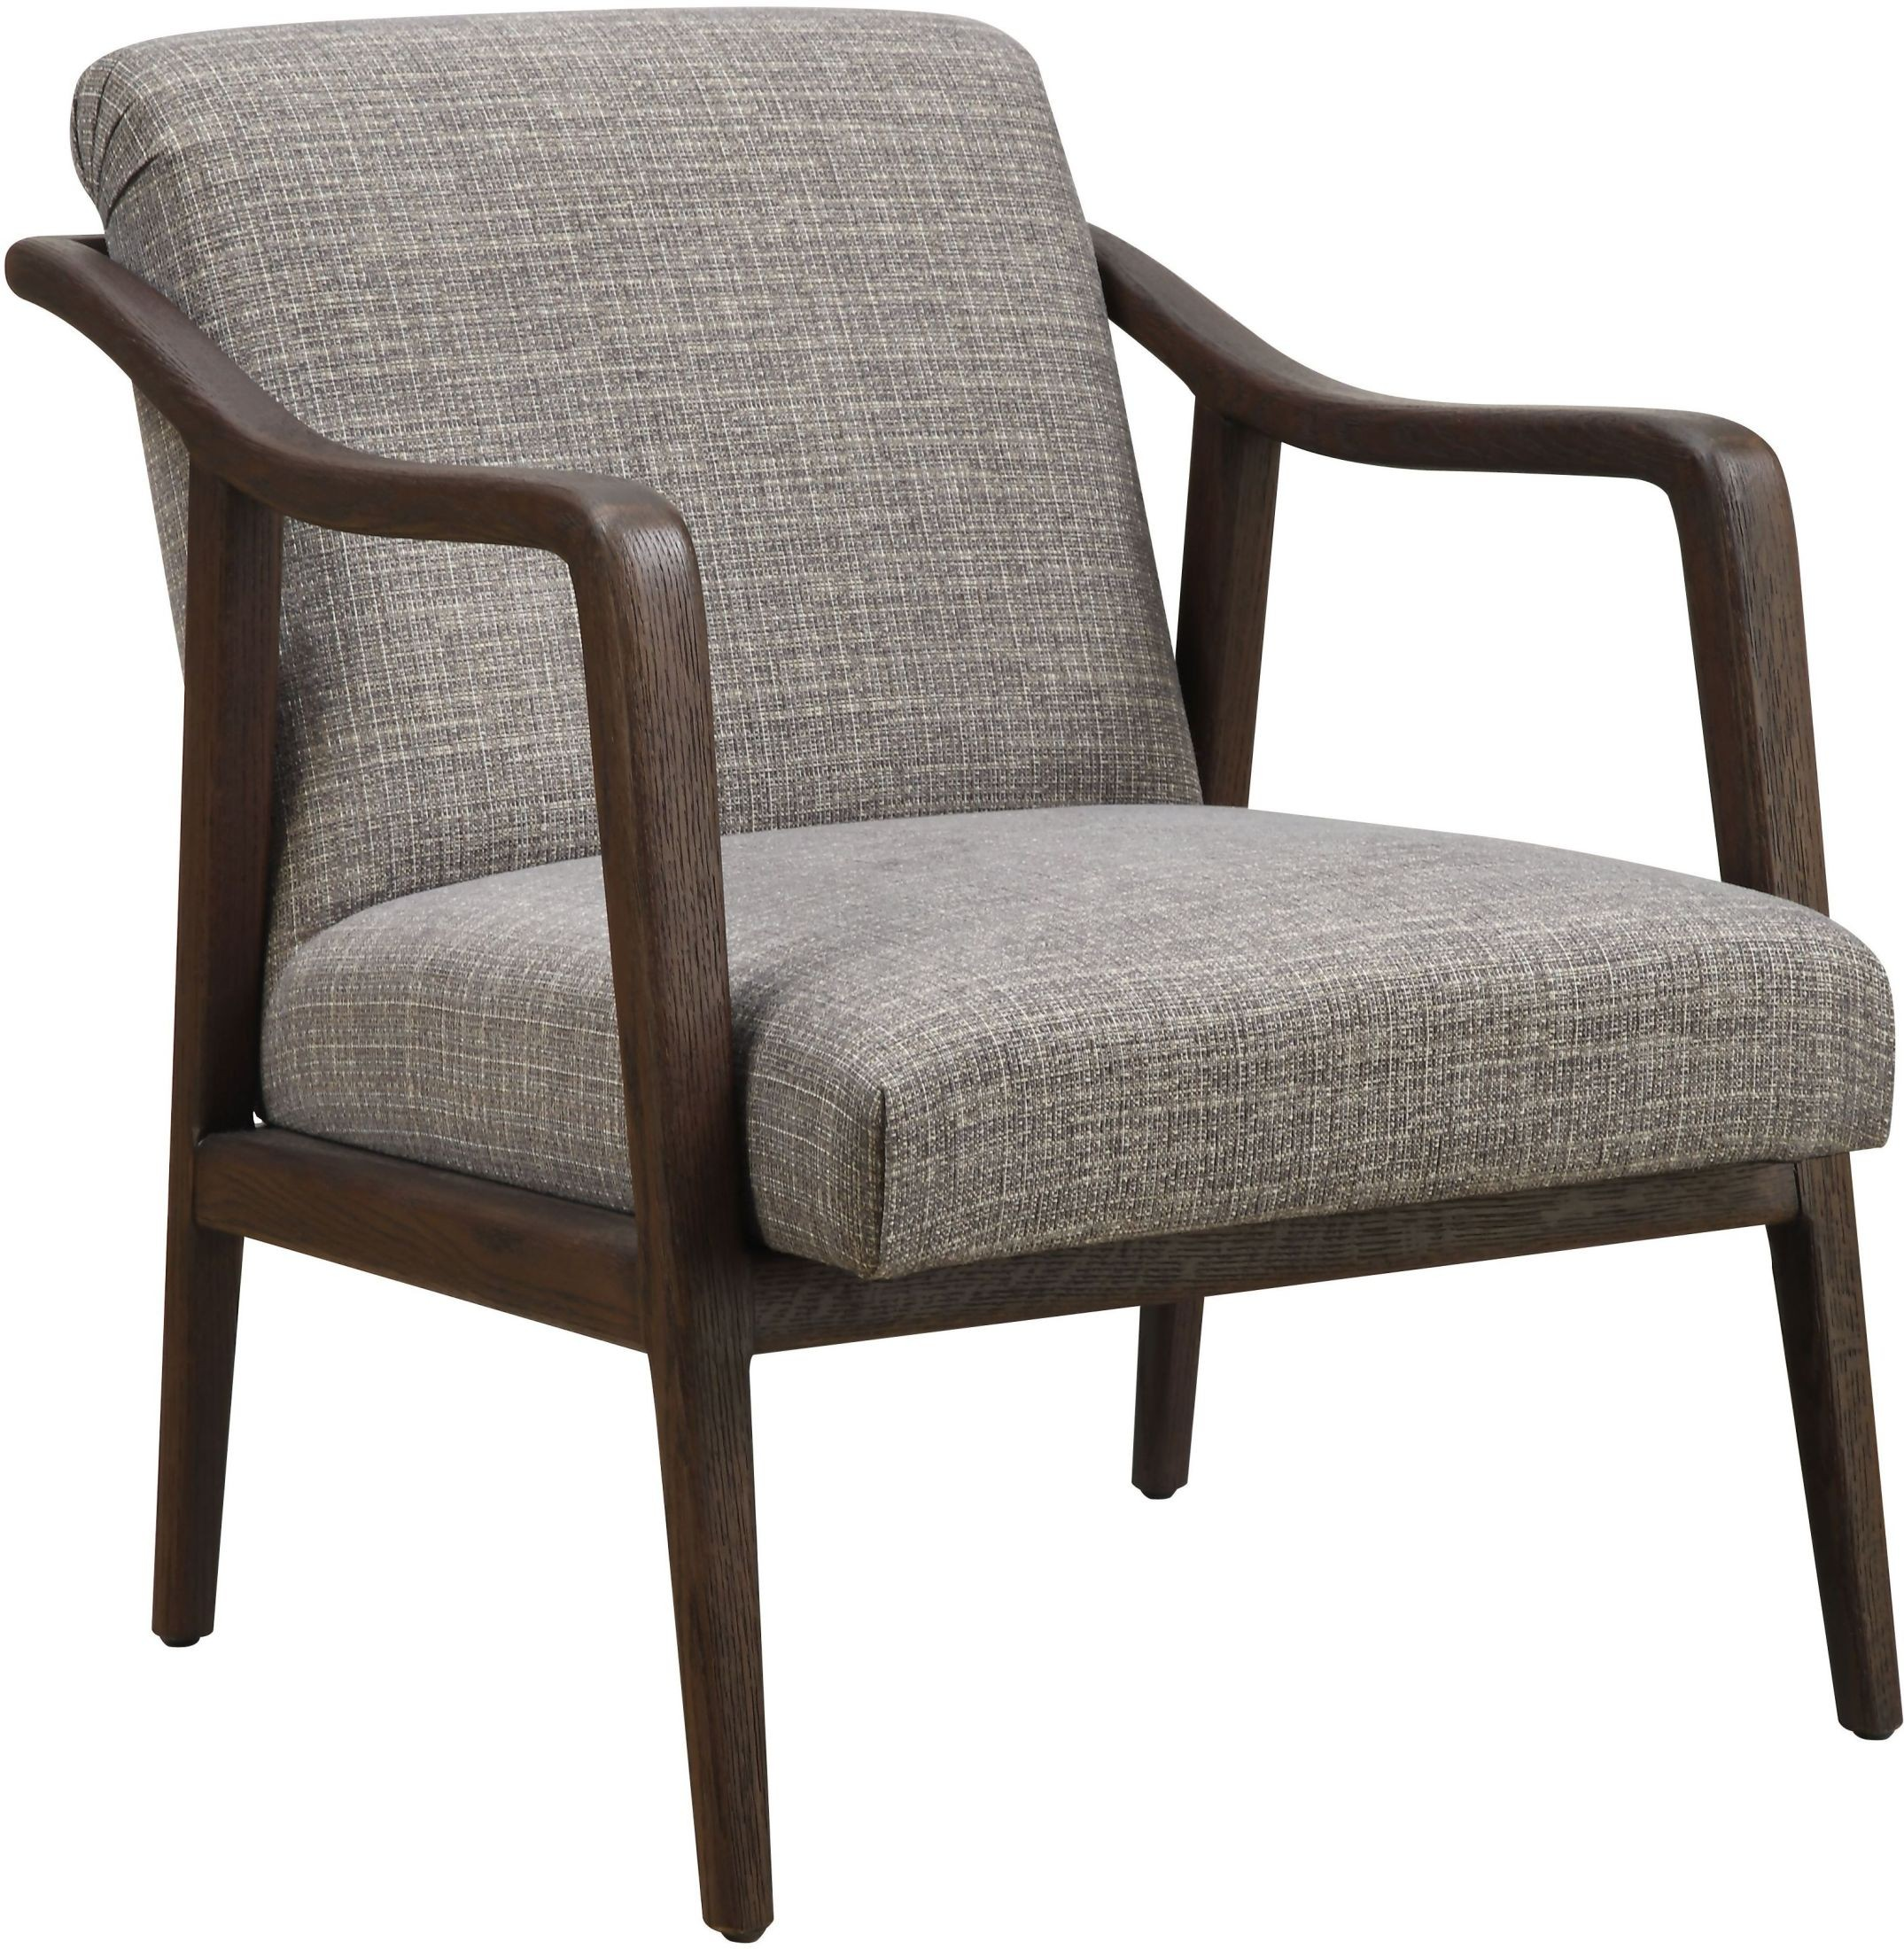 Branchdale Wood Frame Accent Chair: Mid Century Kendrick Driftwood Wood Frame Accent Chair